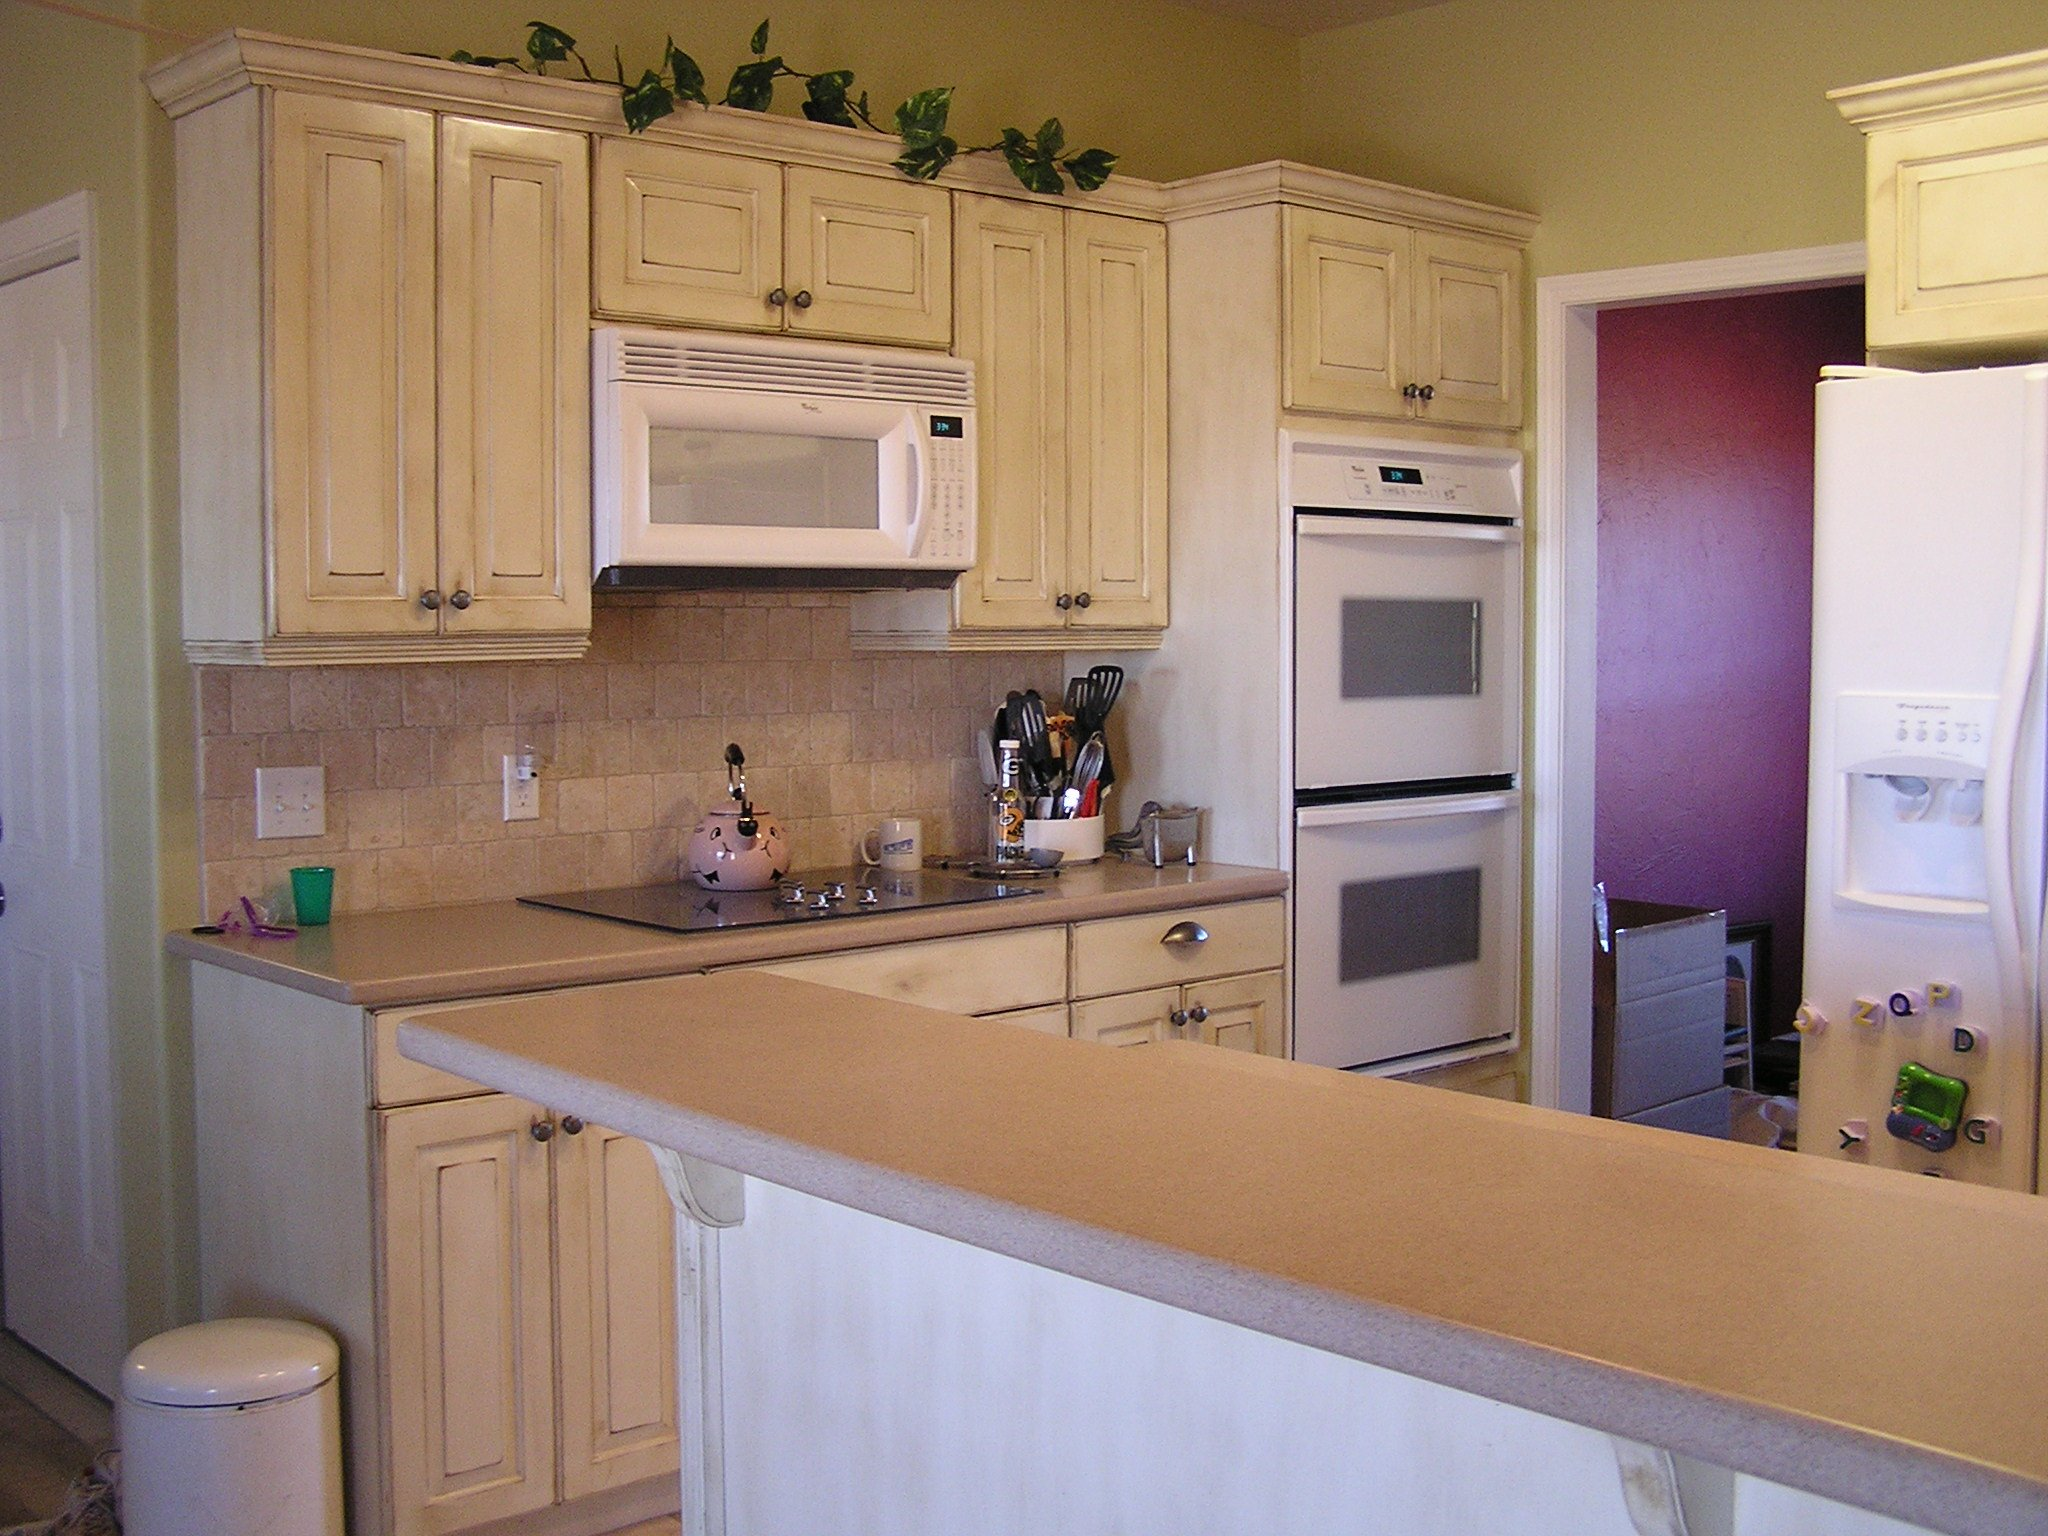 Kitchen cabinets with drawers Photo - 5